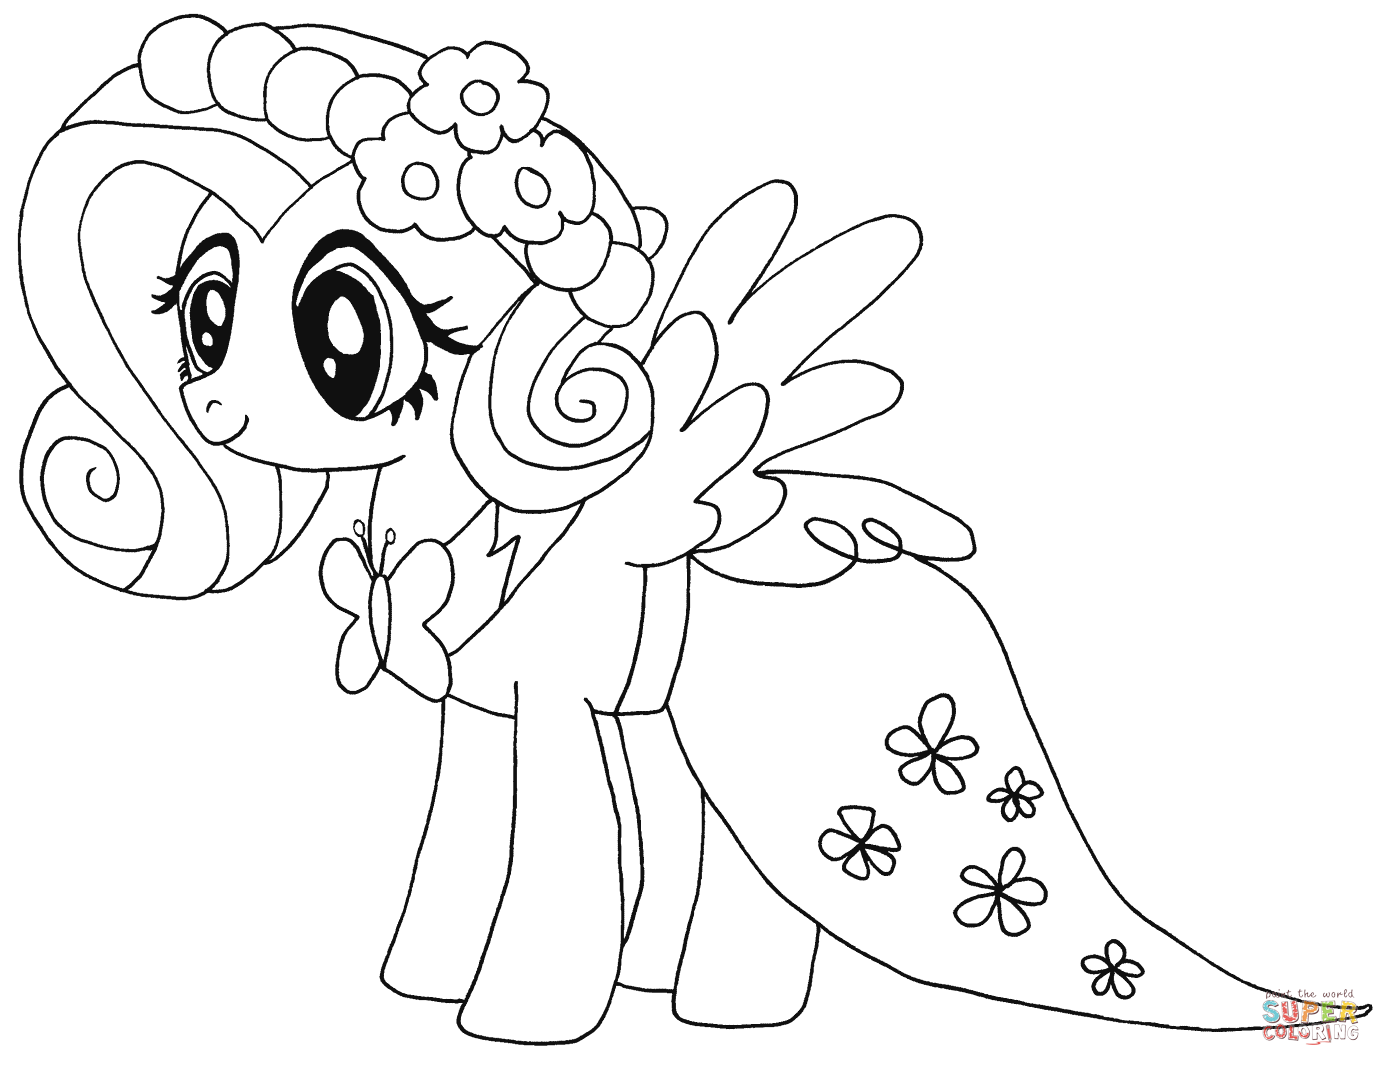 Grab Your Fresh Coloring Pages My Little Pony Download Full Page Here Https Gethighit Com Fresh C My Little Pony Coloring Horse Coloring Pages Coloring Pages